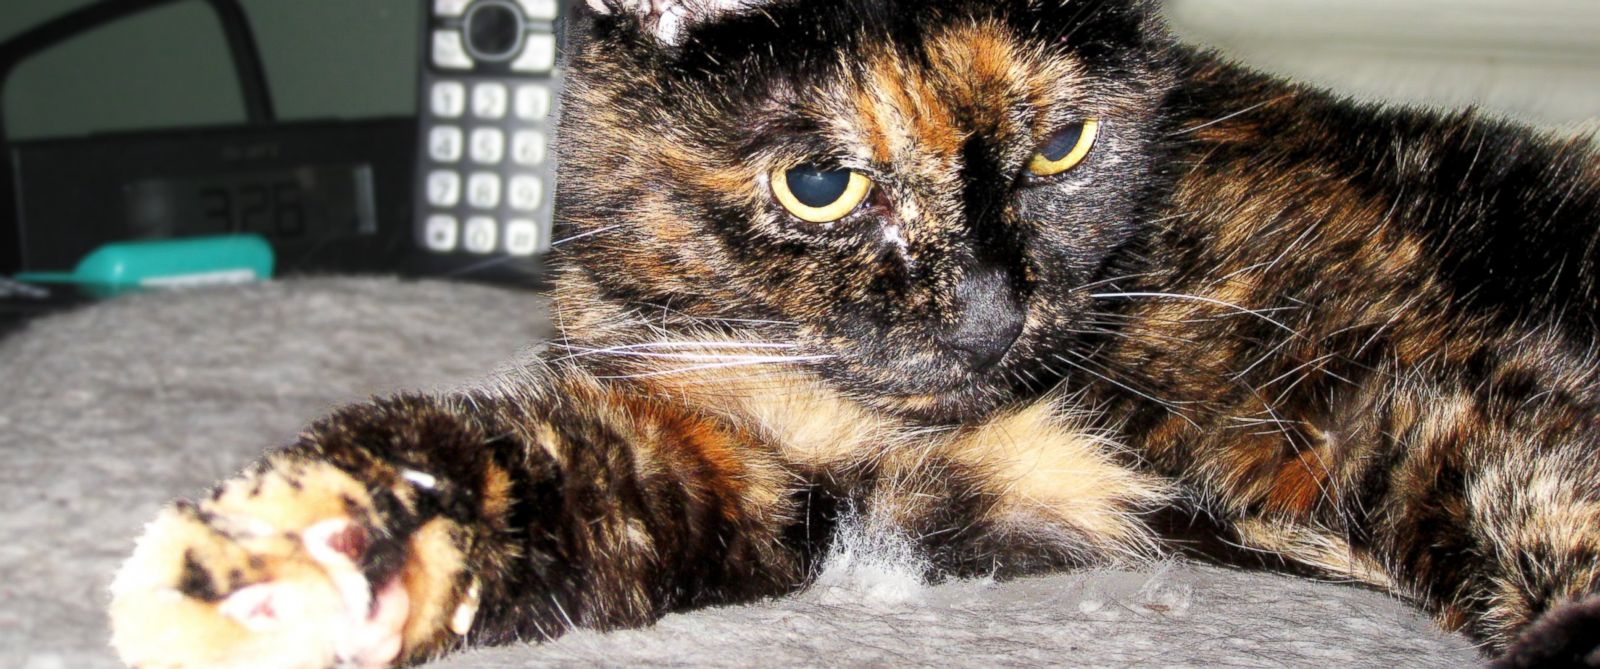 PHOTO: Tiffany Two, recognized by Guinness as the worlds oldest living cat, turned 27 on March 13, 2015.